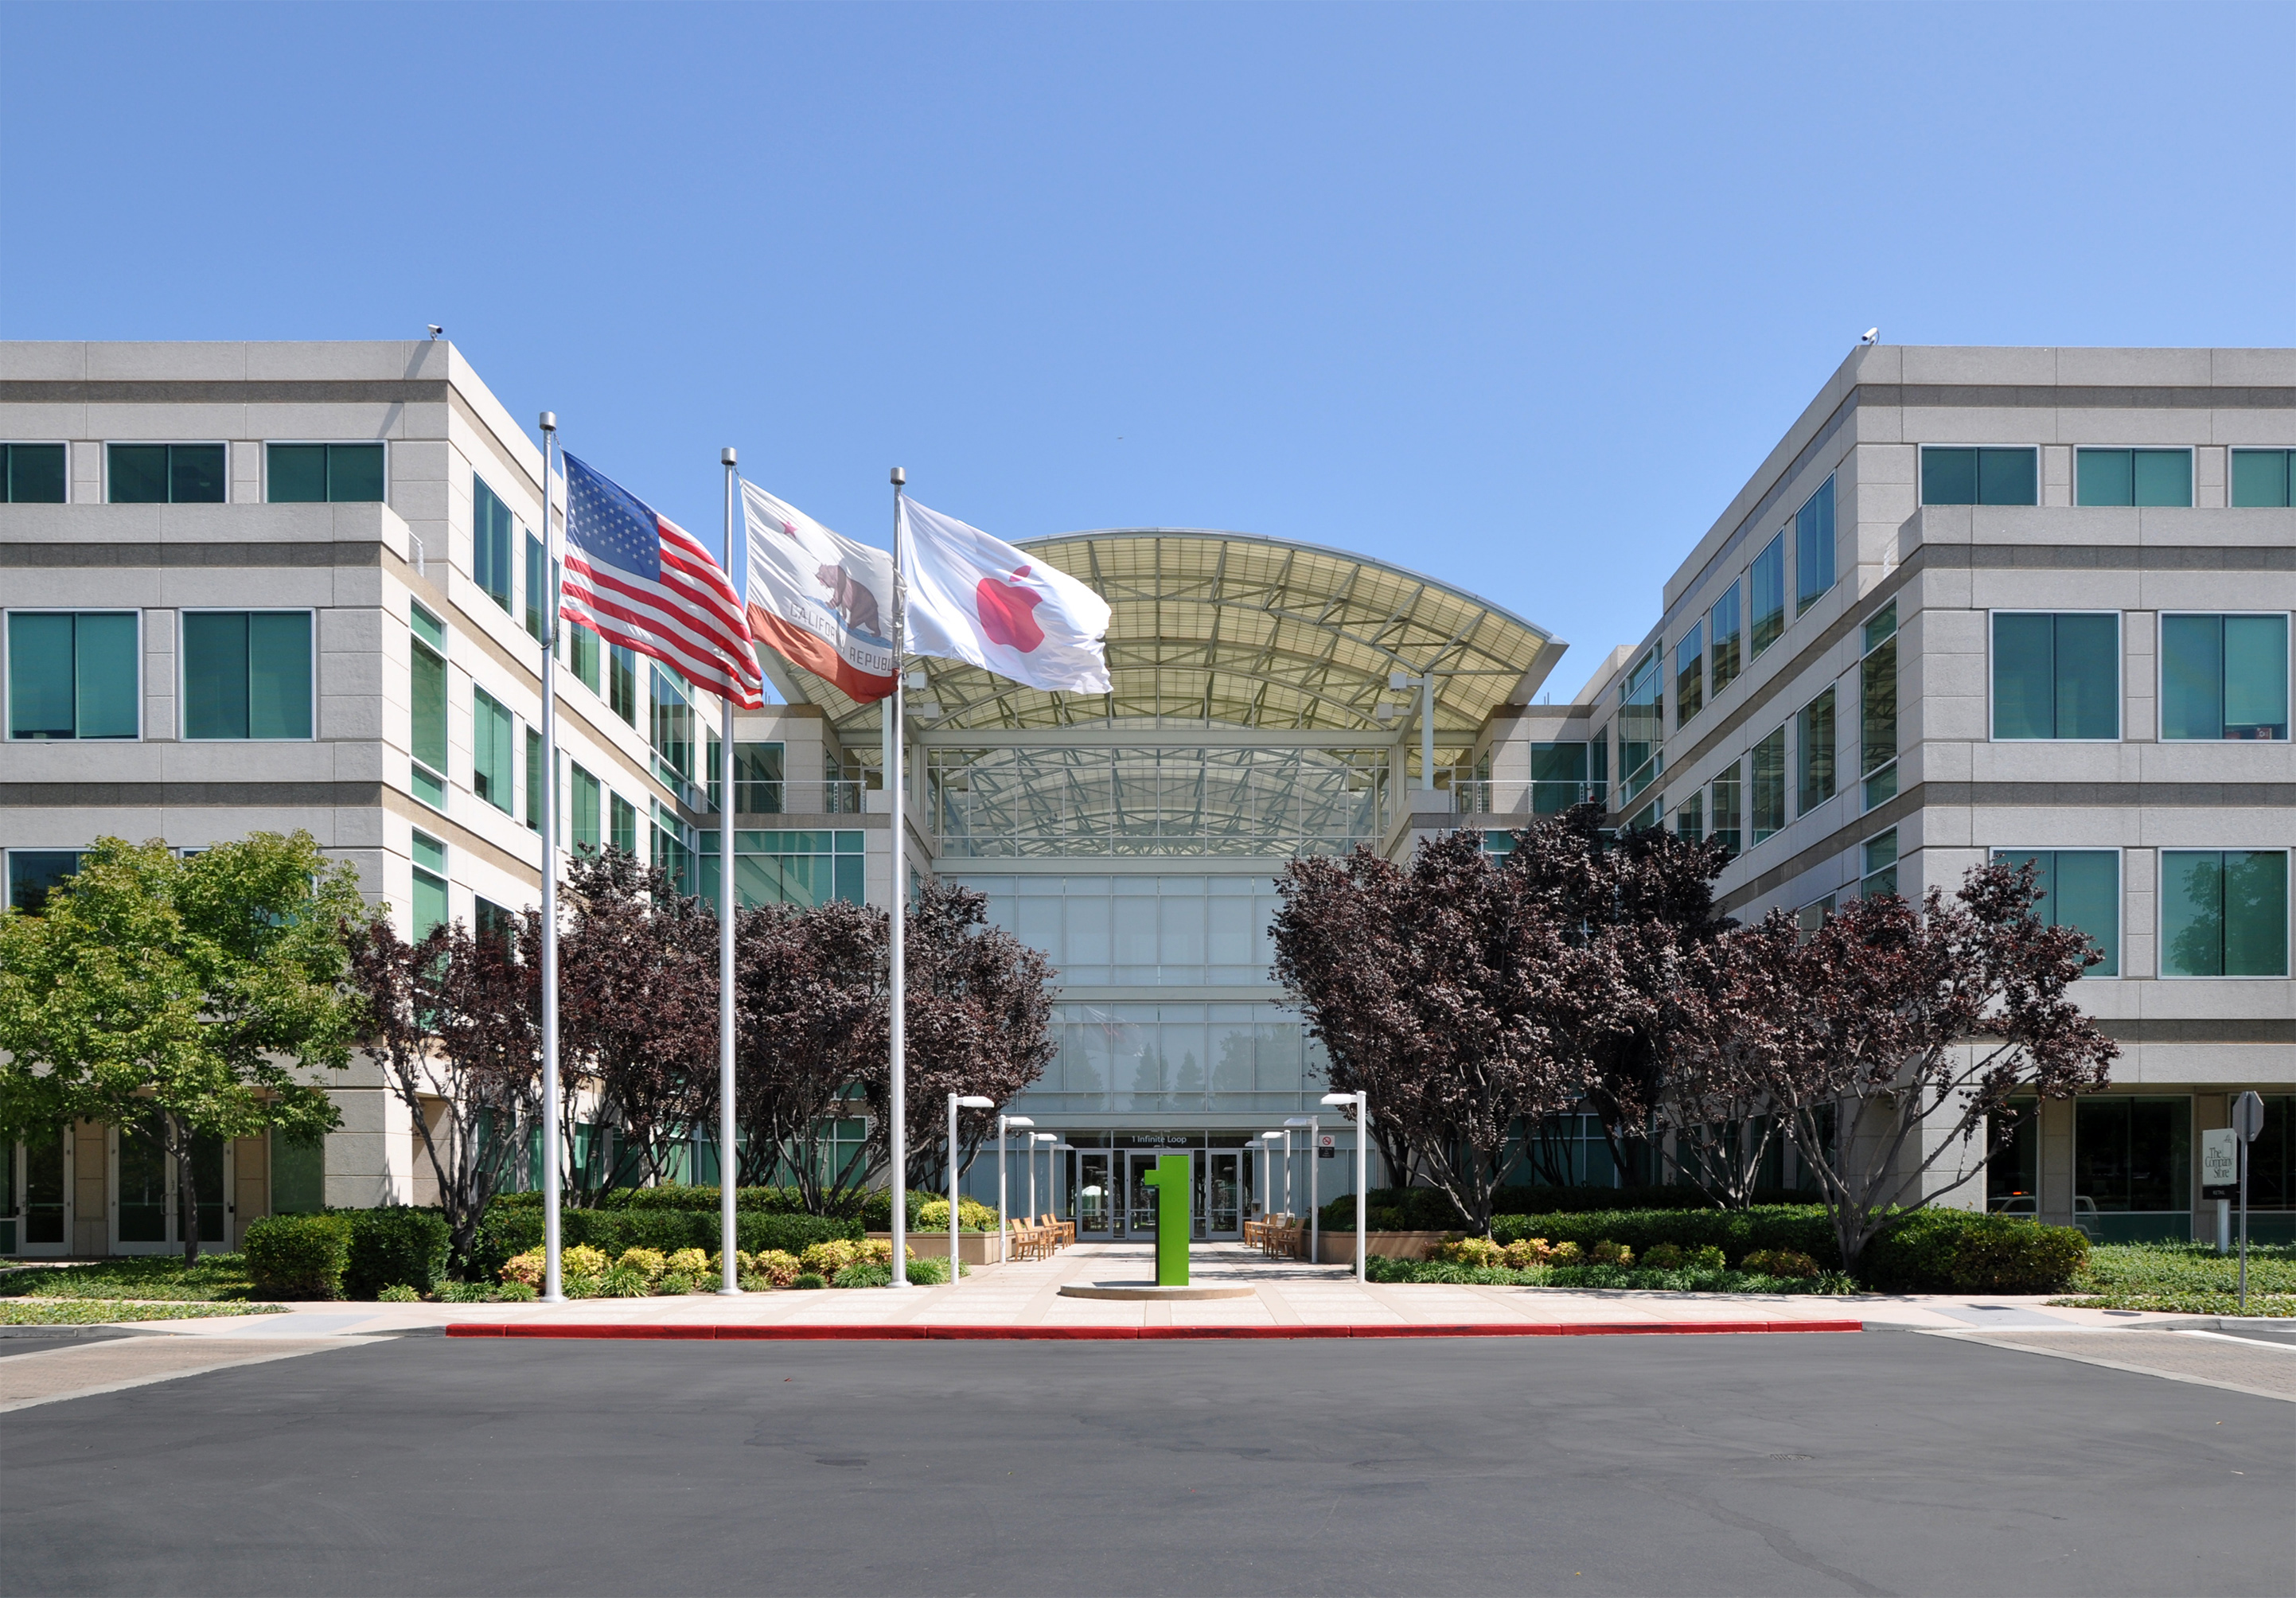 Win this new charity auction and take a tour of Apple headquarters